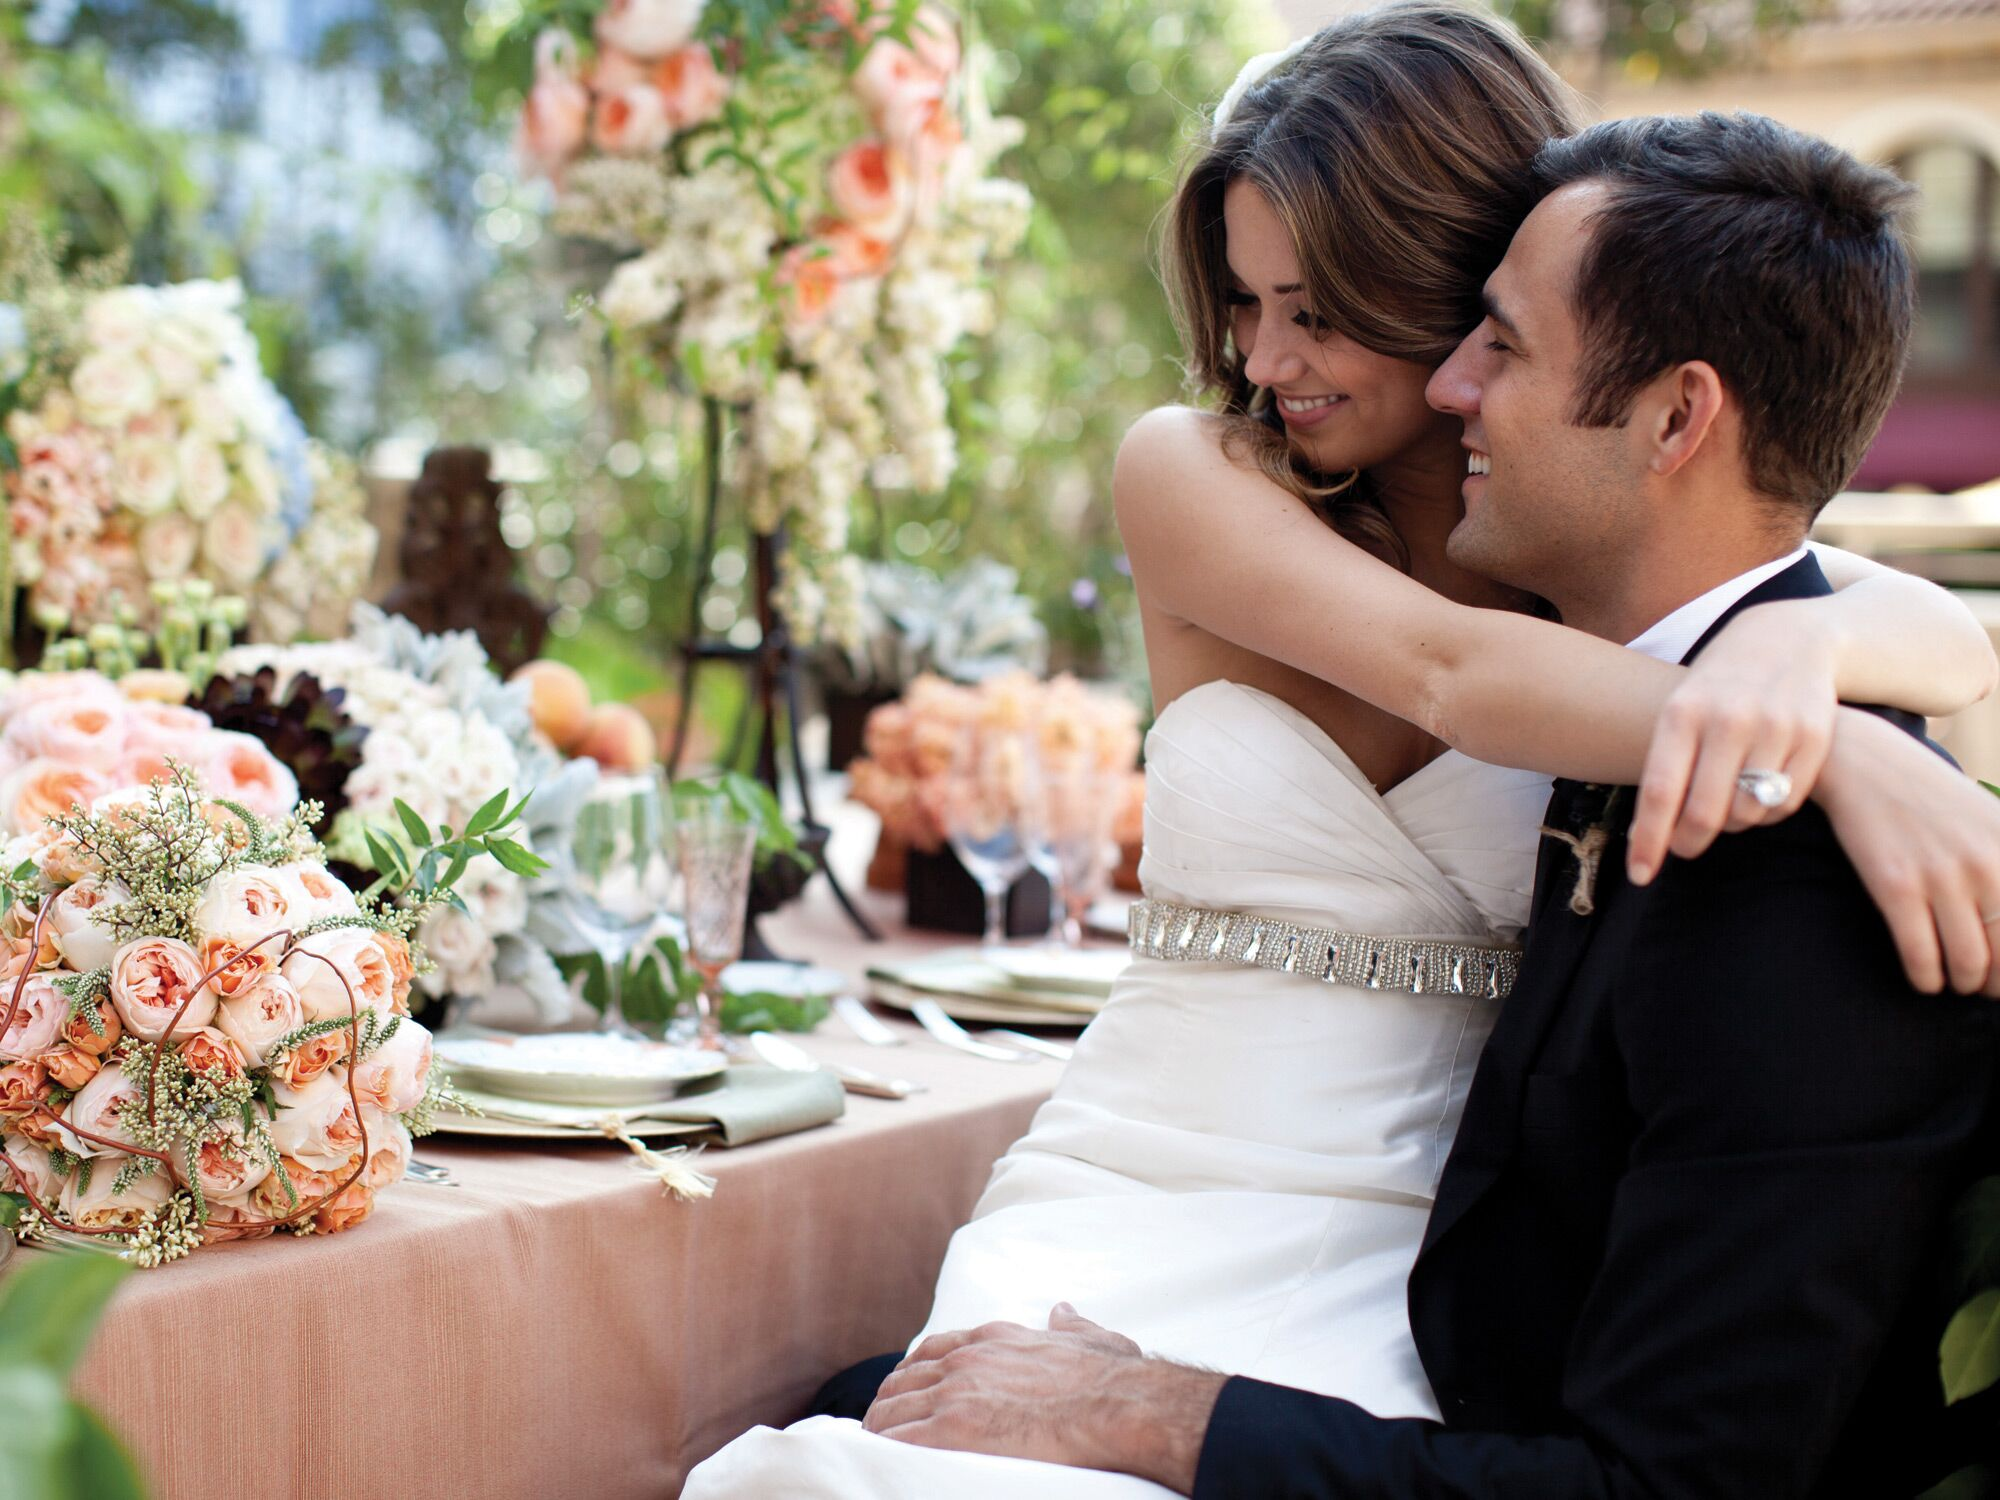 Top 10 Wedding Planning Myths Top 10 Wedding Planning Myths new picture